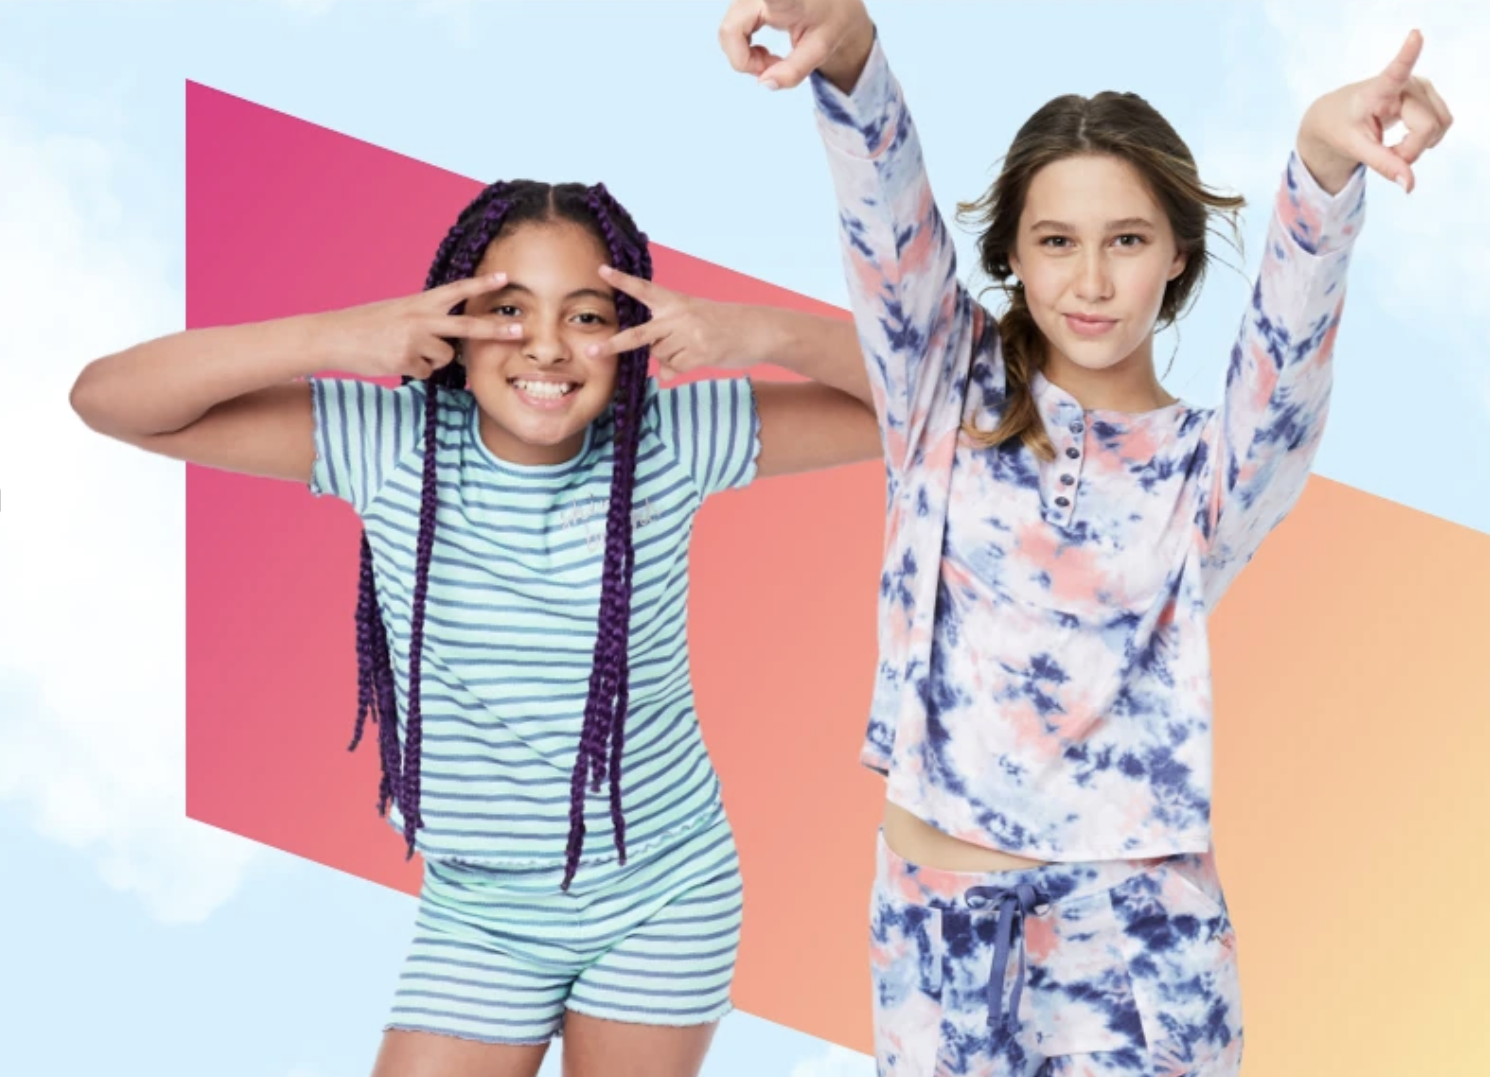 Justice has launched a revamped Shopjustice.com under new ownership as it repositions itself as the premier tween girls' specialty retailer.